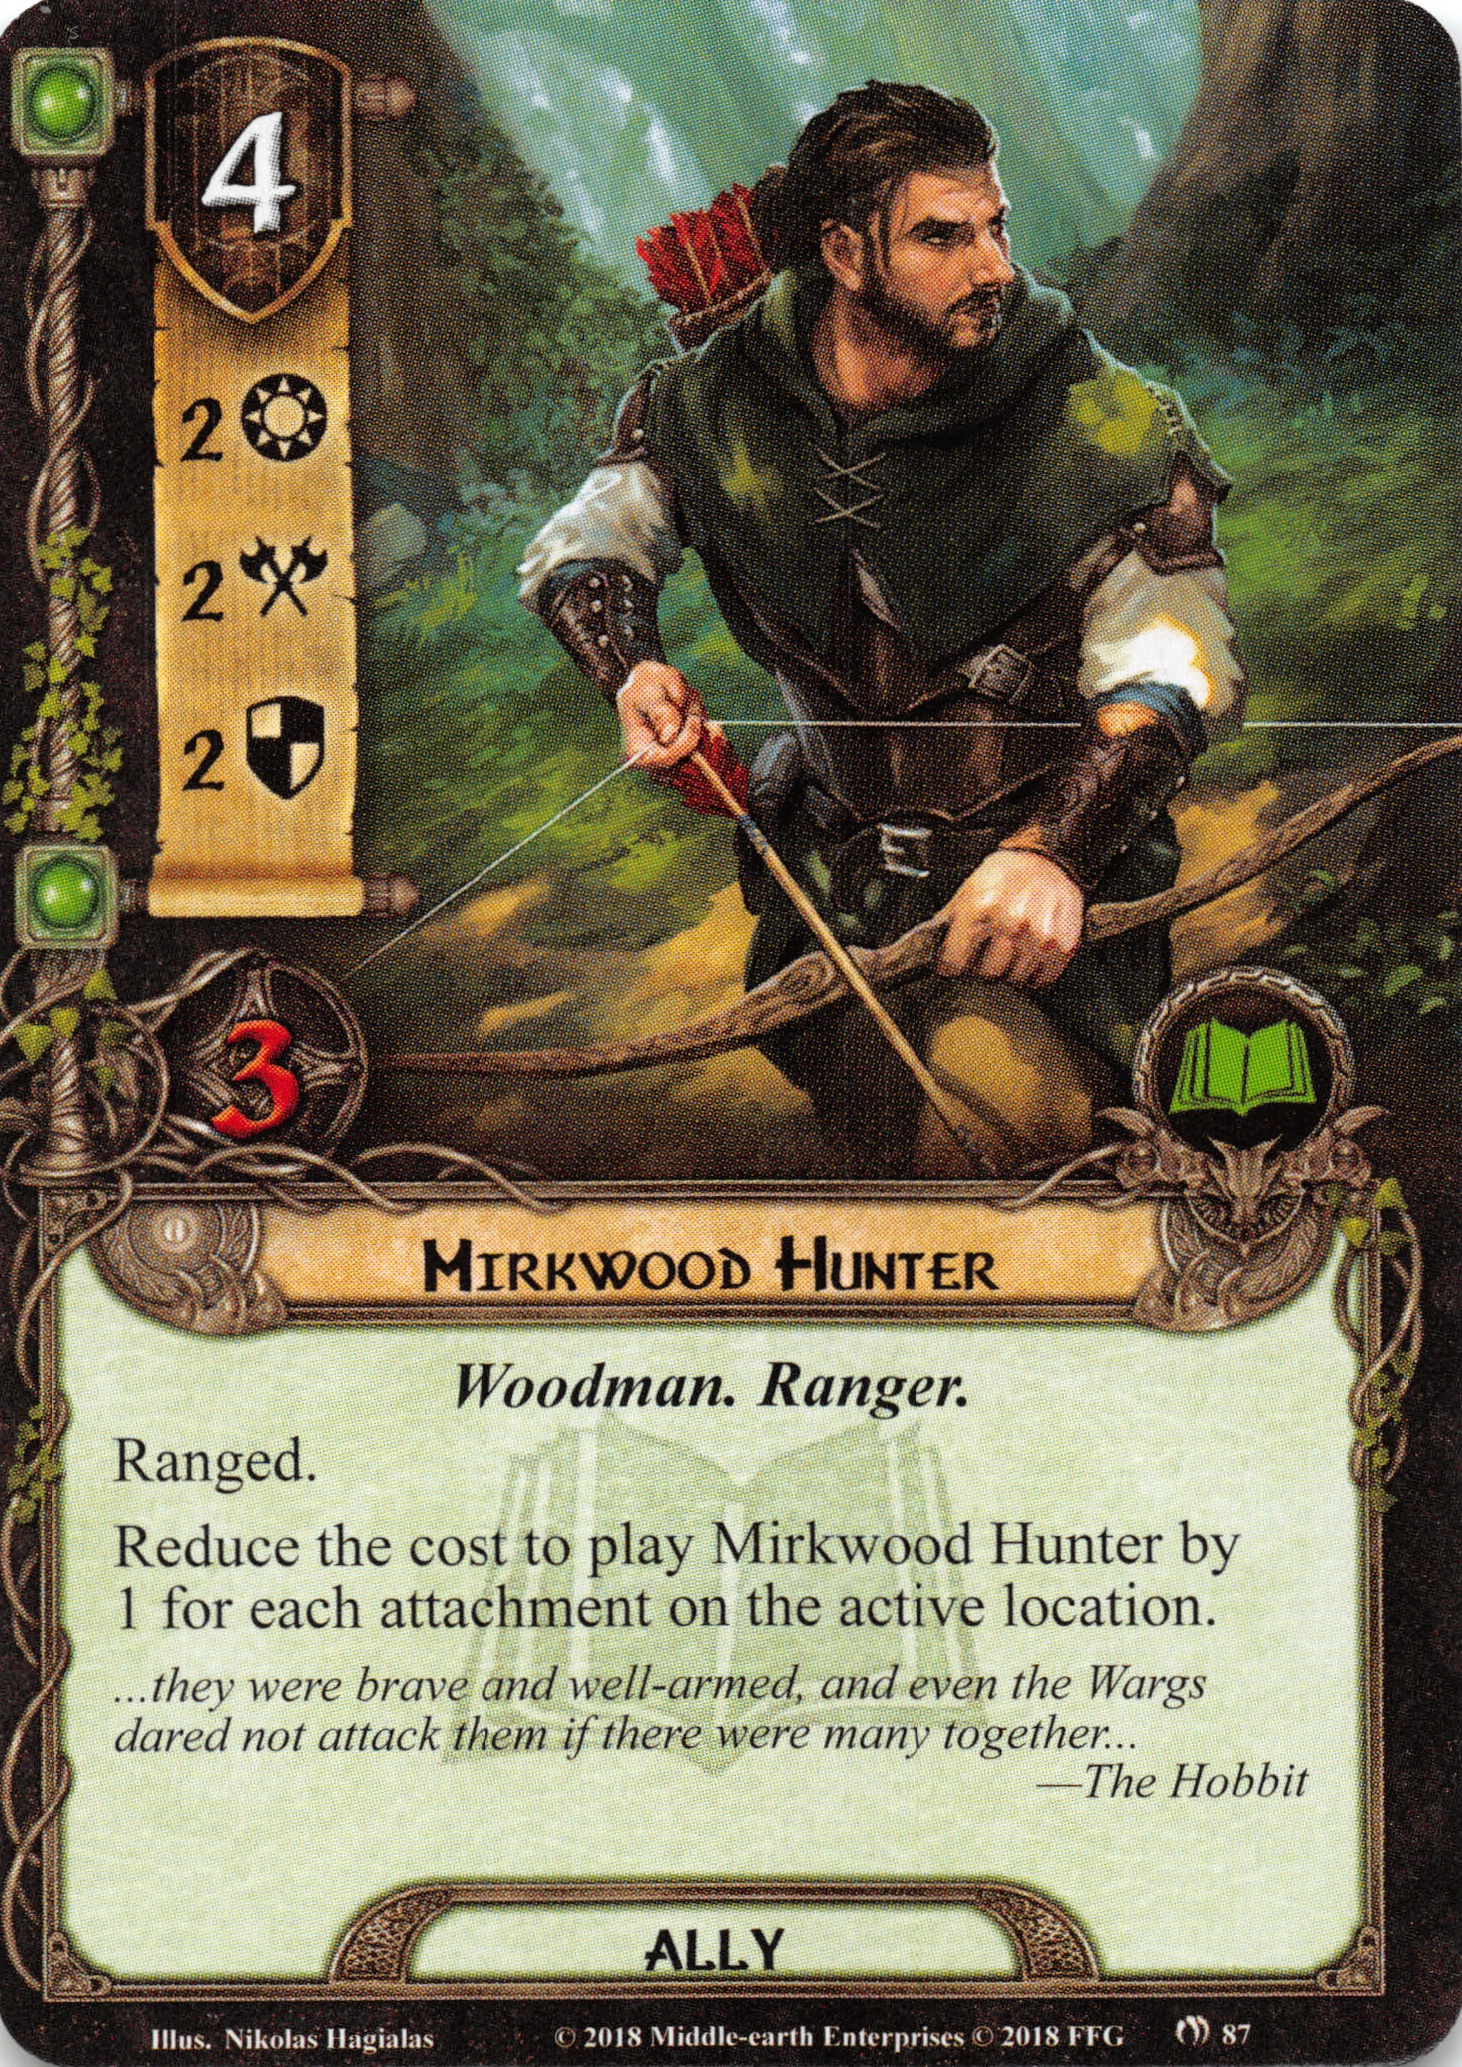 Mirkwood Hunter